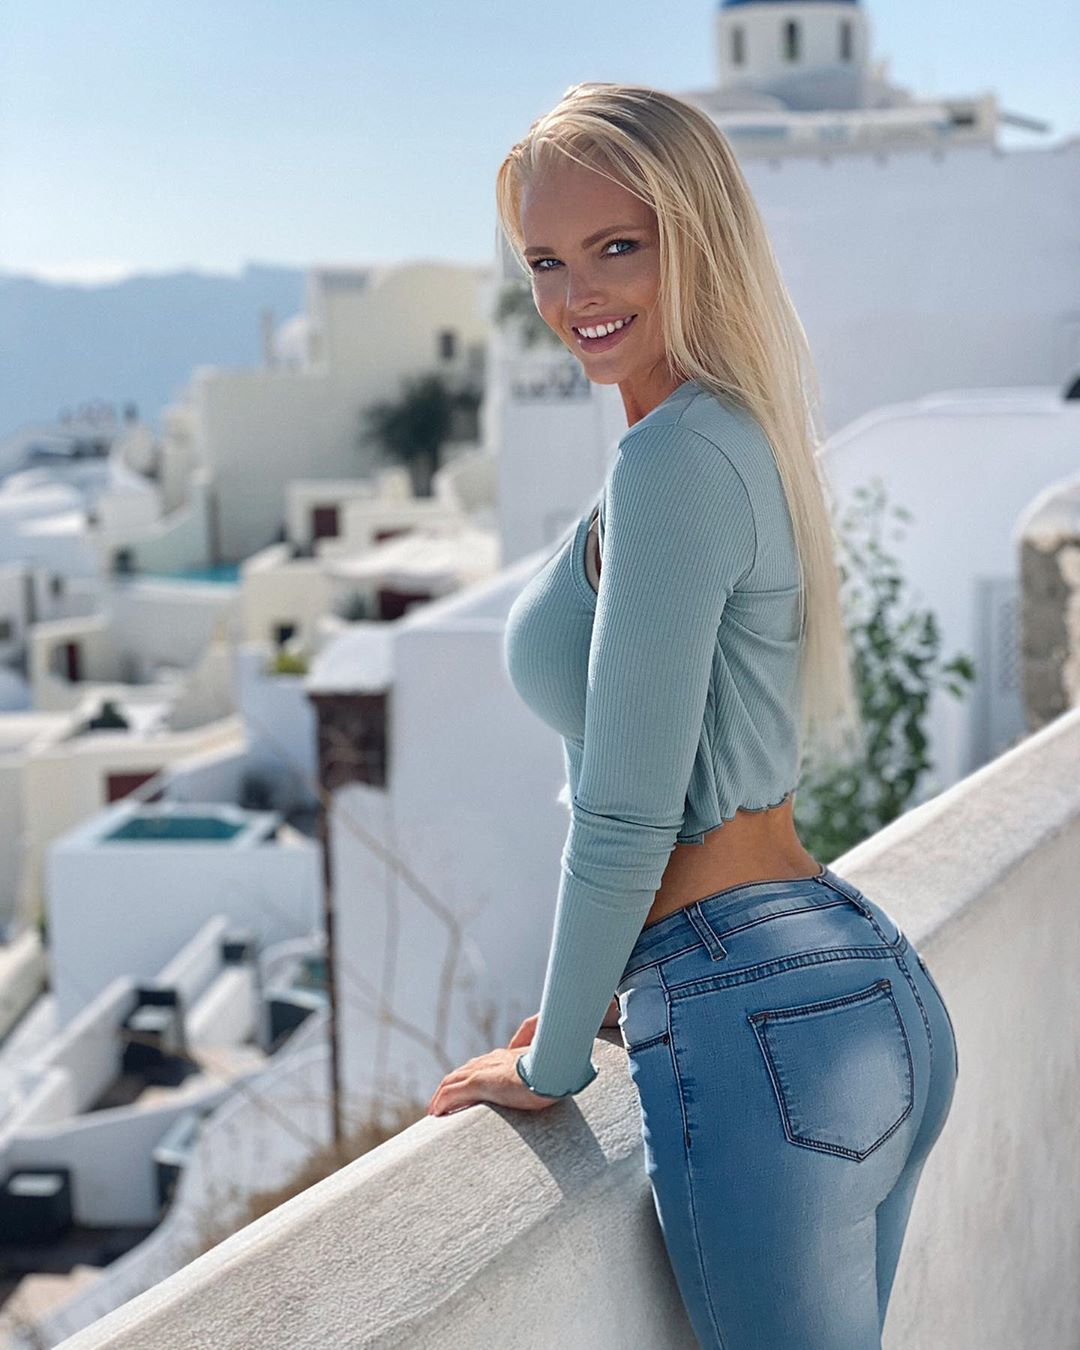 Zienna-Sonne-Williams-Wallpapers-Insta-Fit-Bio-2